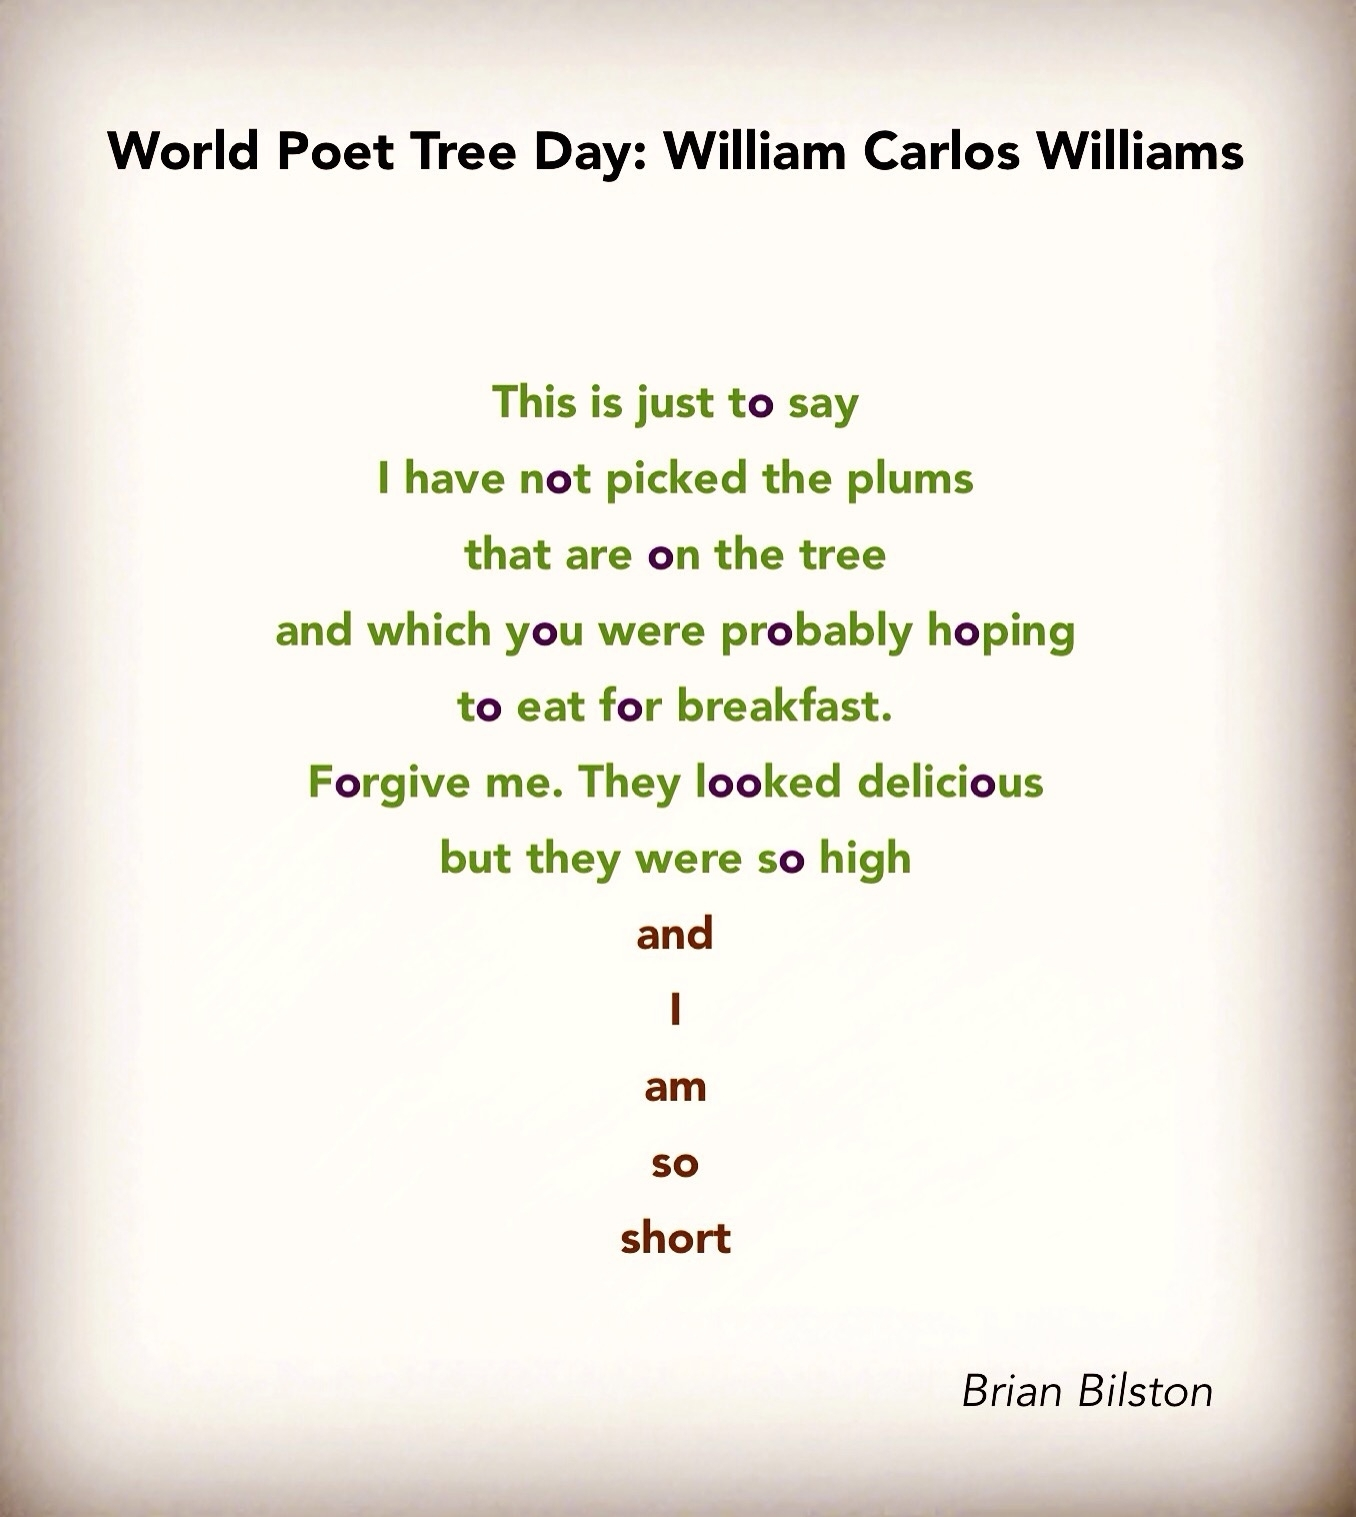 World Poet Tree Day: William Carlos Williams   Brian Bilston's within Short Poem O Calender Images